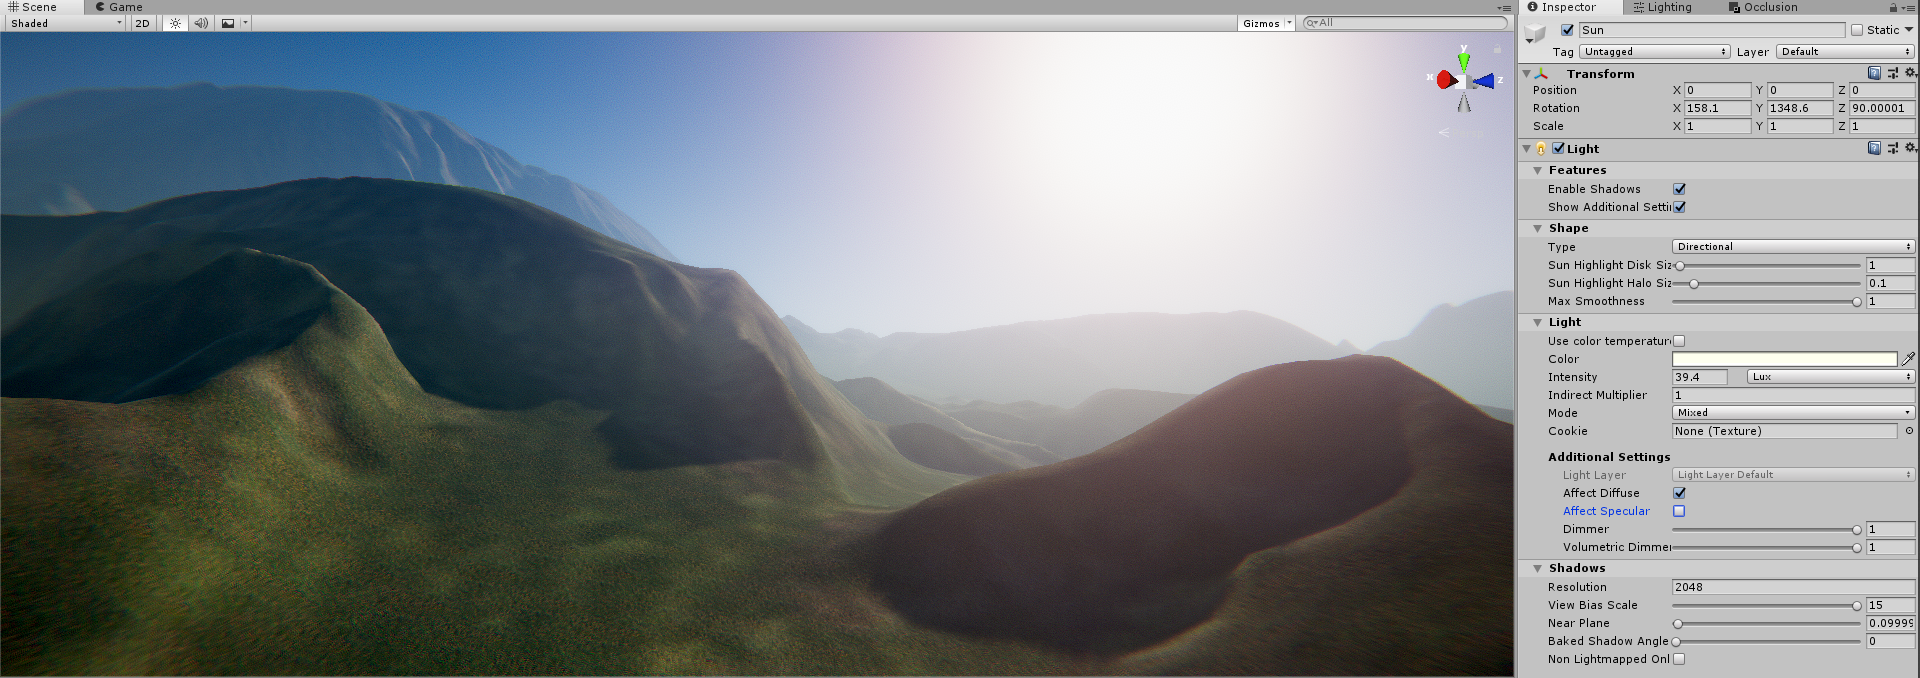 HDRP lit shader specular intensity - Unity Forum